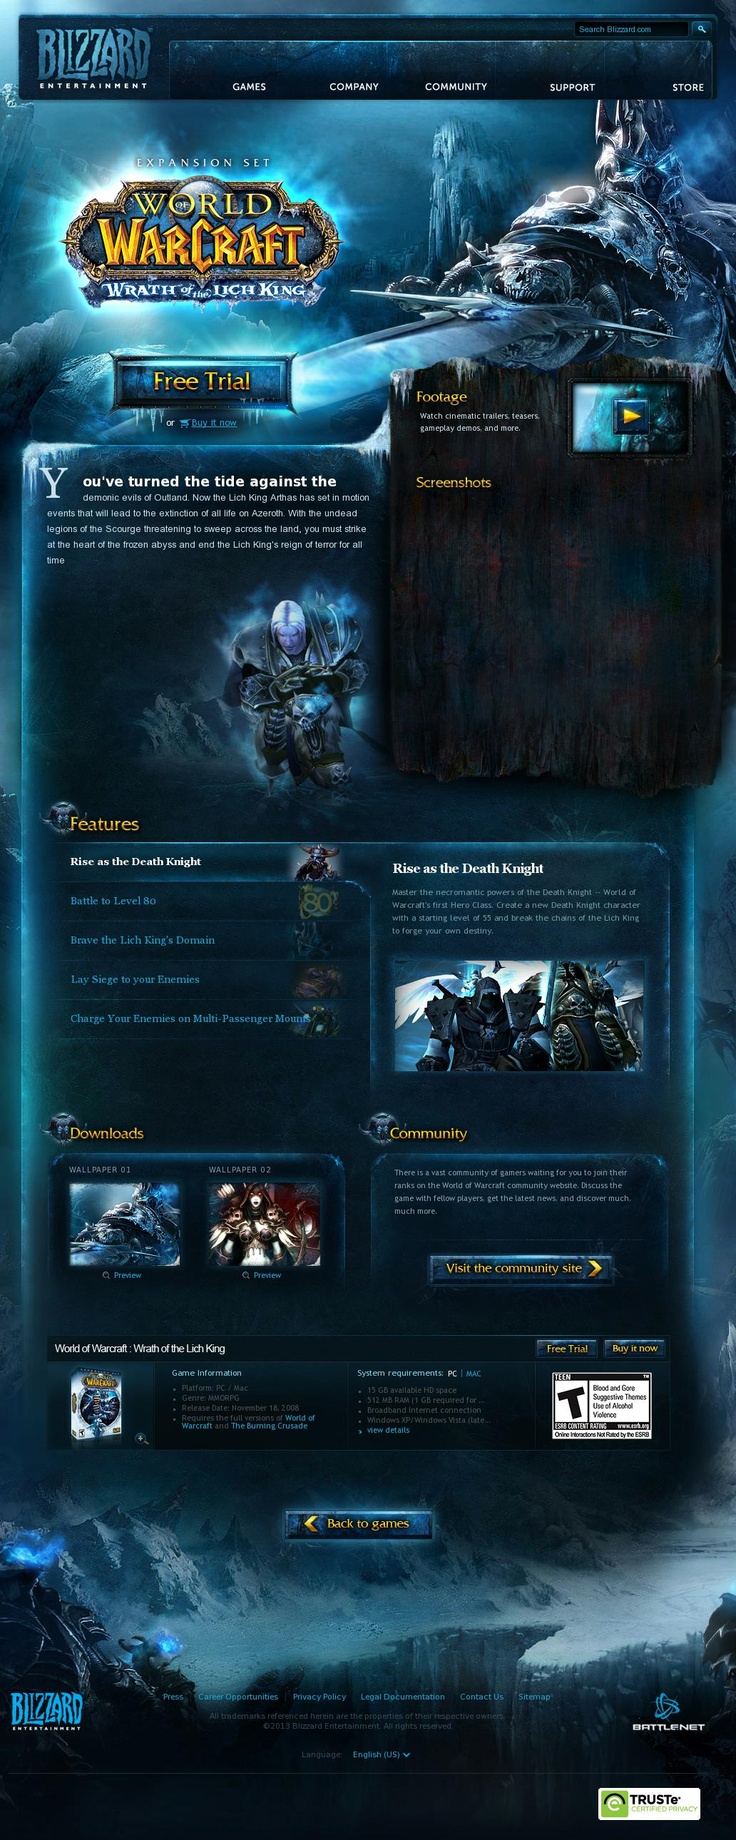 World of Warcraft: Wrath of the Lich King  http://us.blizzard.com/en-us/games/wrath/